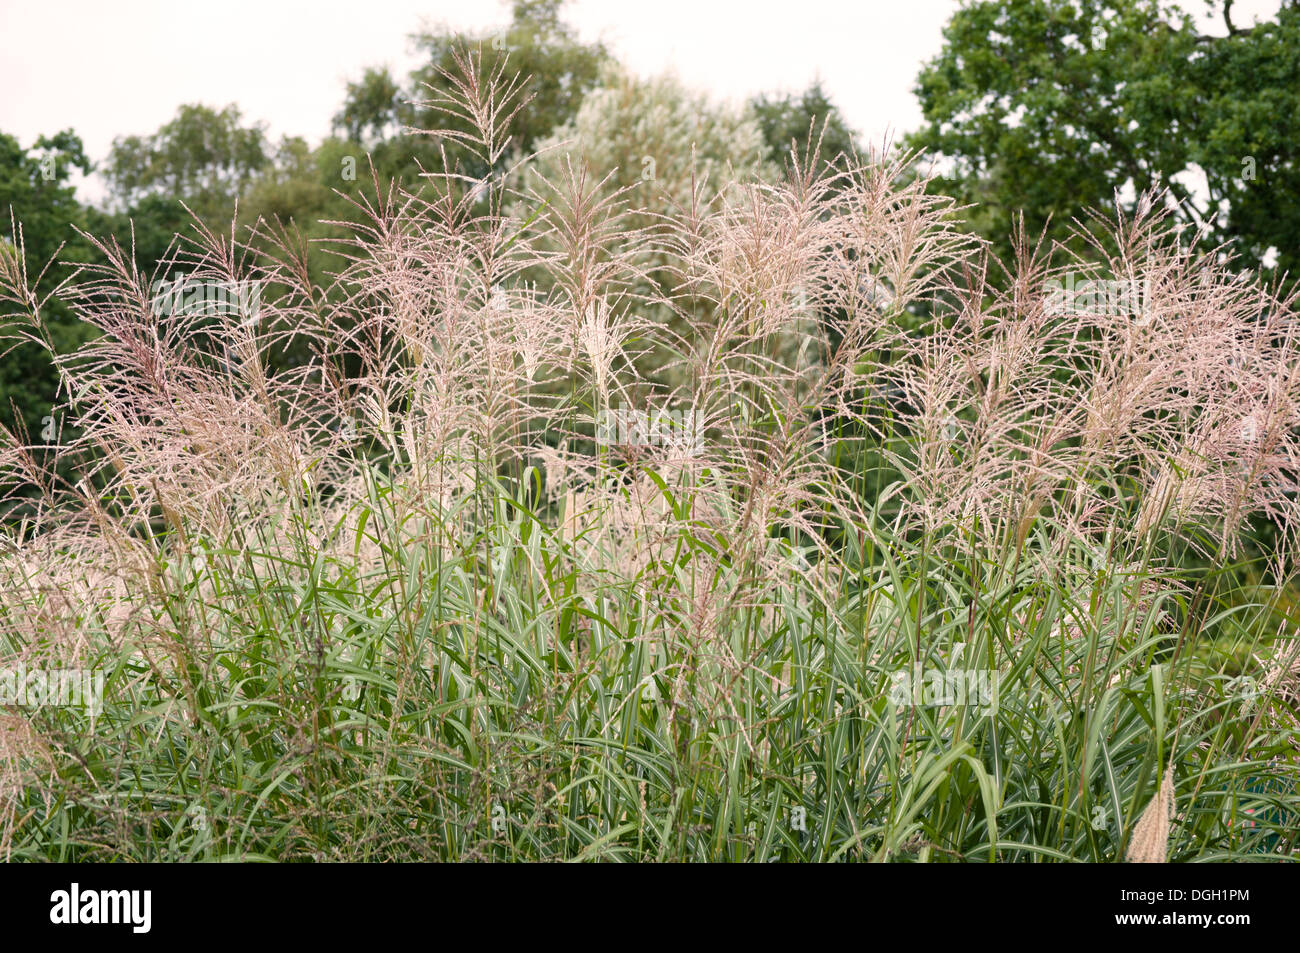 MISCANTHUS SINENSIS SILBERFEDER Stock Photo: 61840204 - Alamy